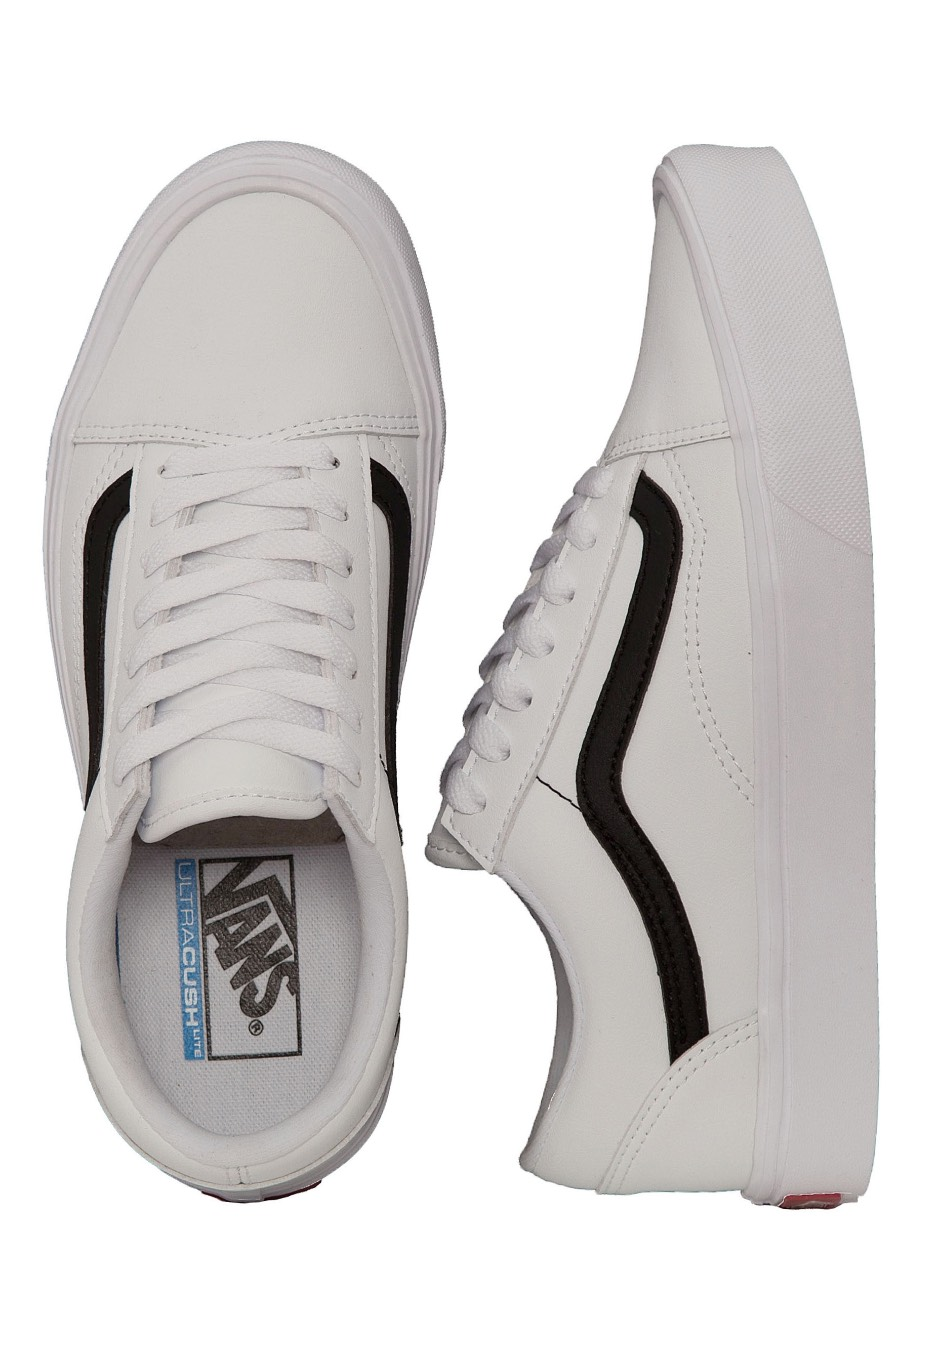 2b5d64bc4745f Vans - Old Skool Lite Classic Tumble True White/Black - Shoes -  Impericon.com US